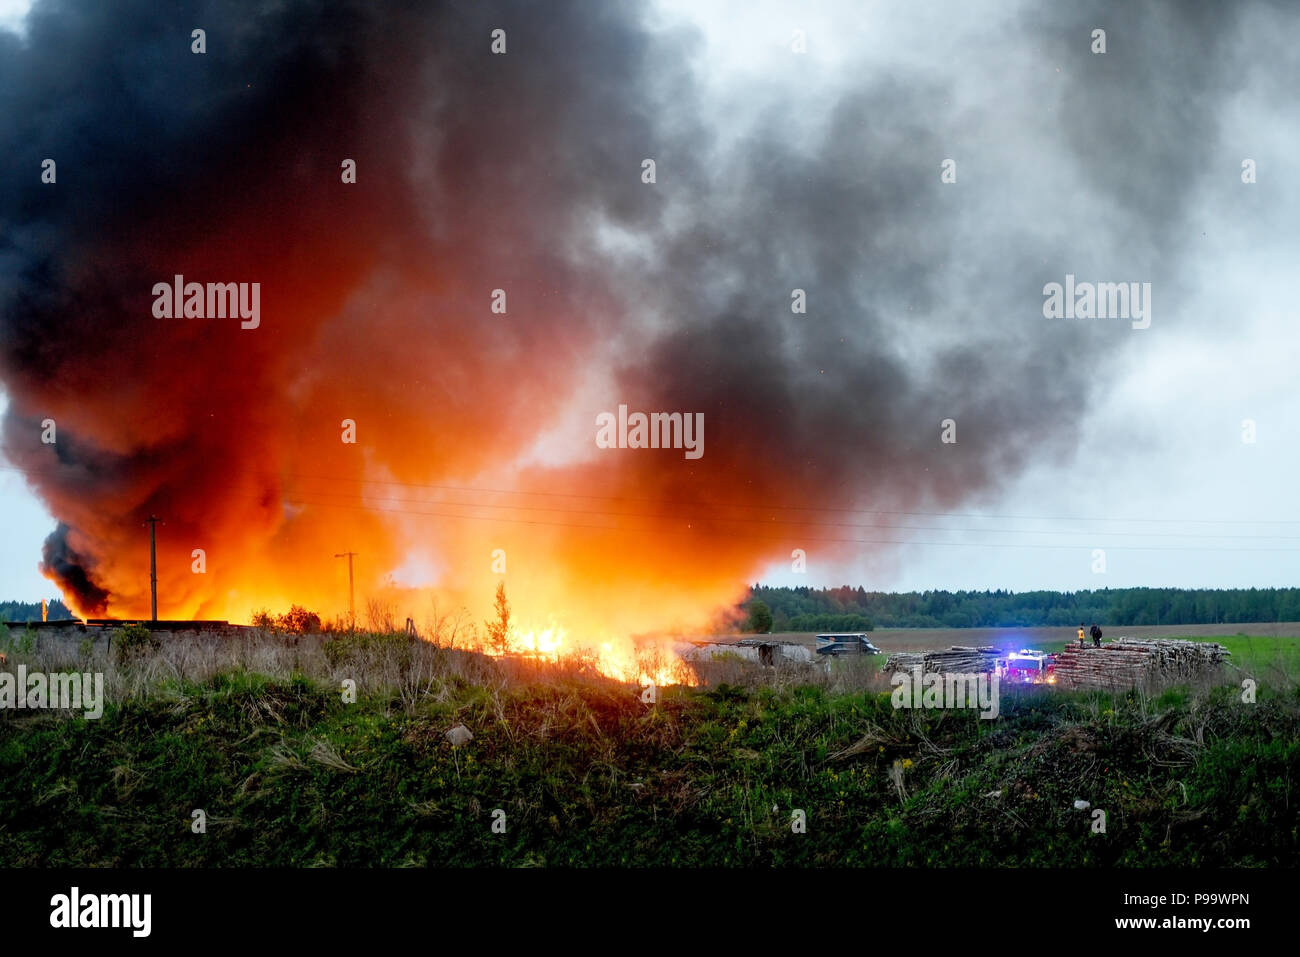 Firefighters extinguish the fire in the village, hot weather and the concept of safety - Stock Image